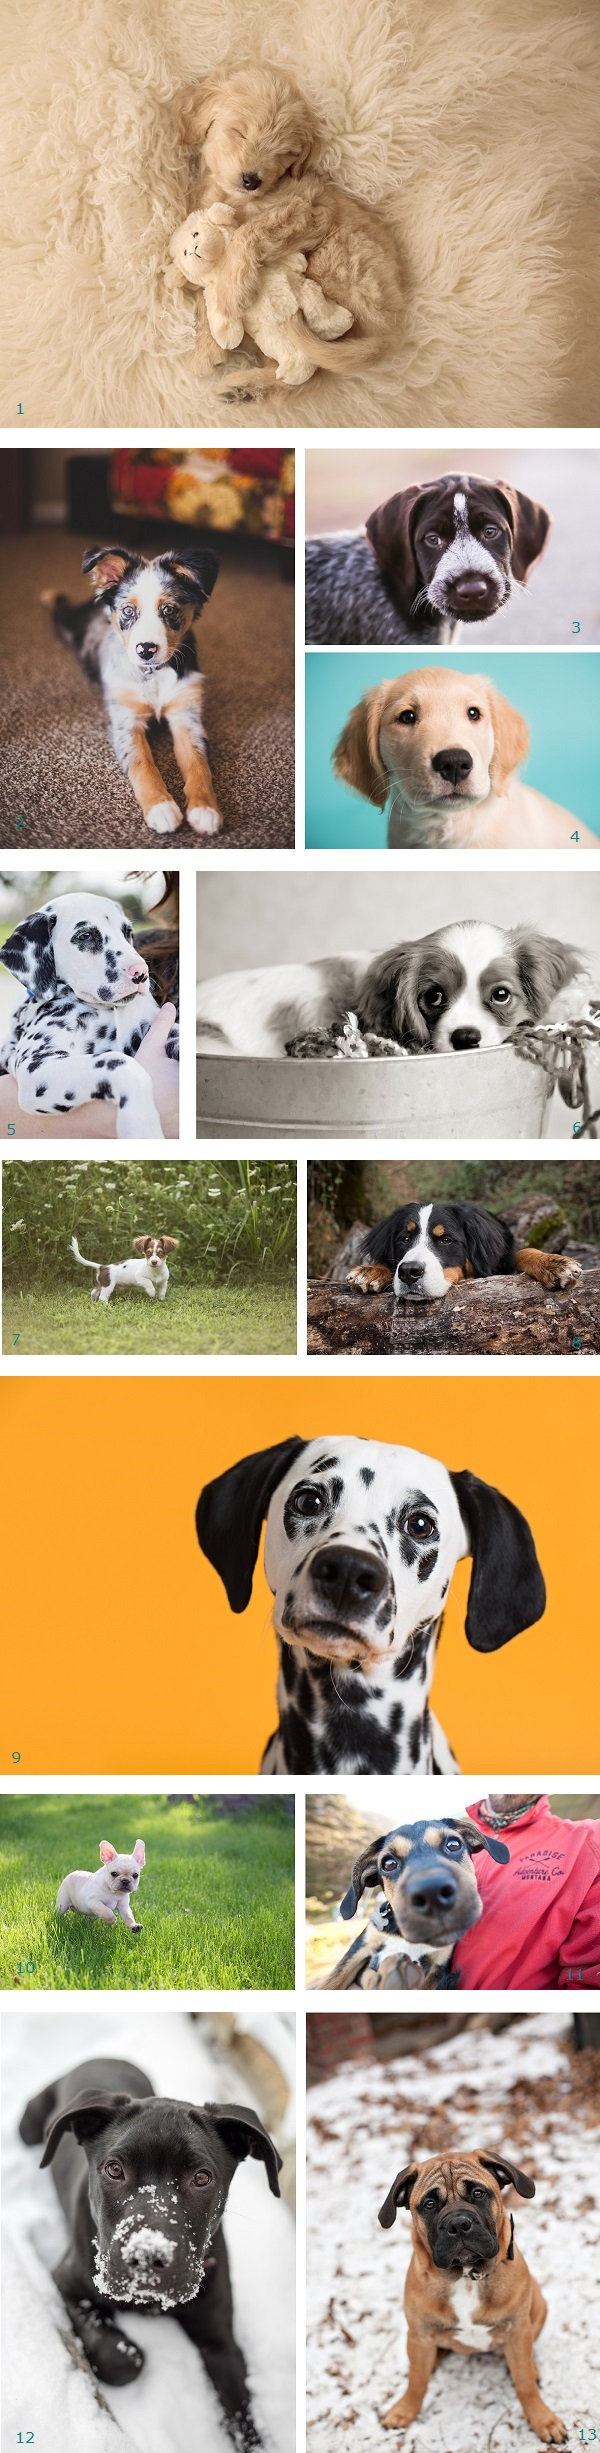 Puppy Love 2015 Nominees for Pawscars